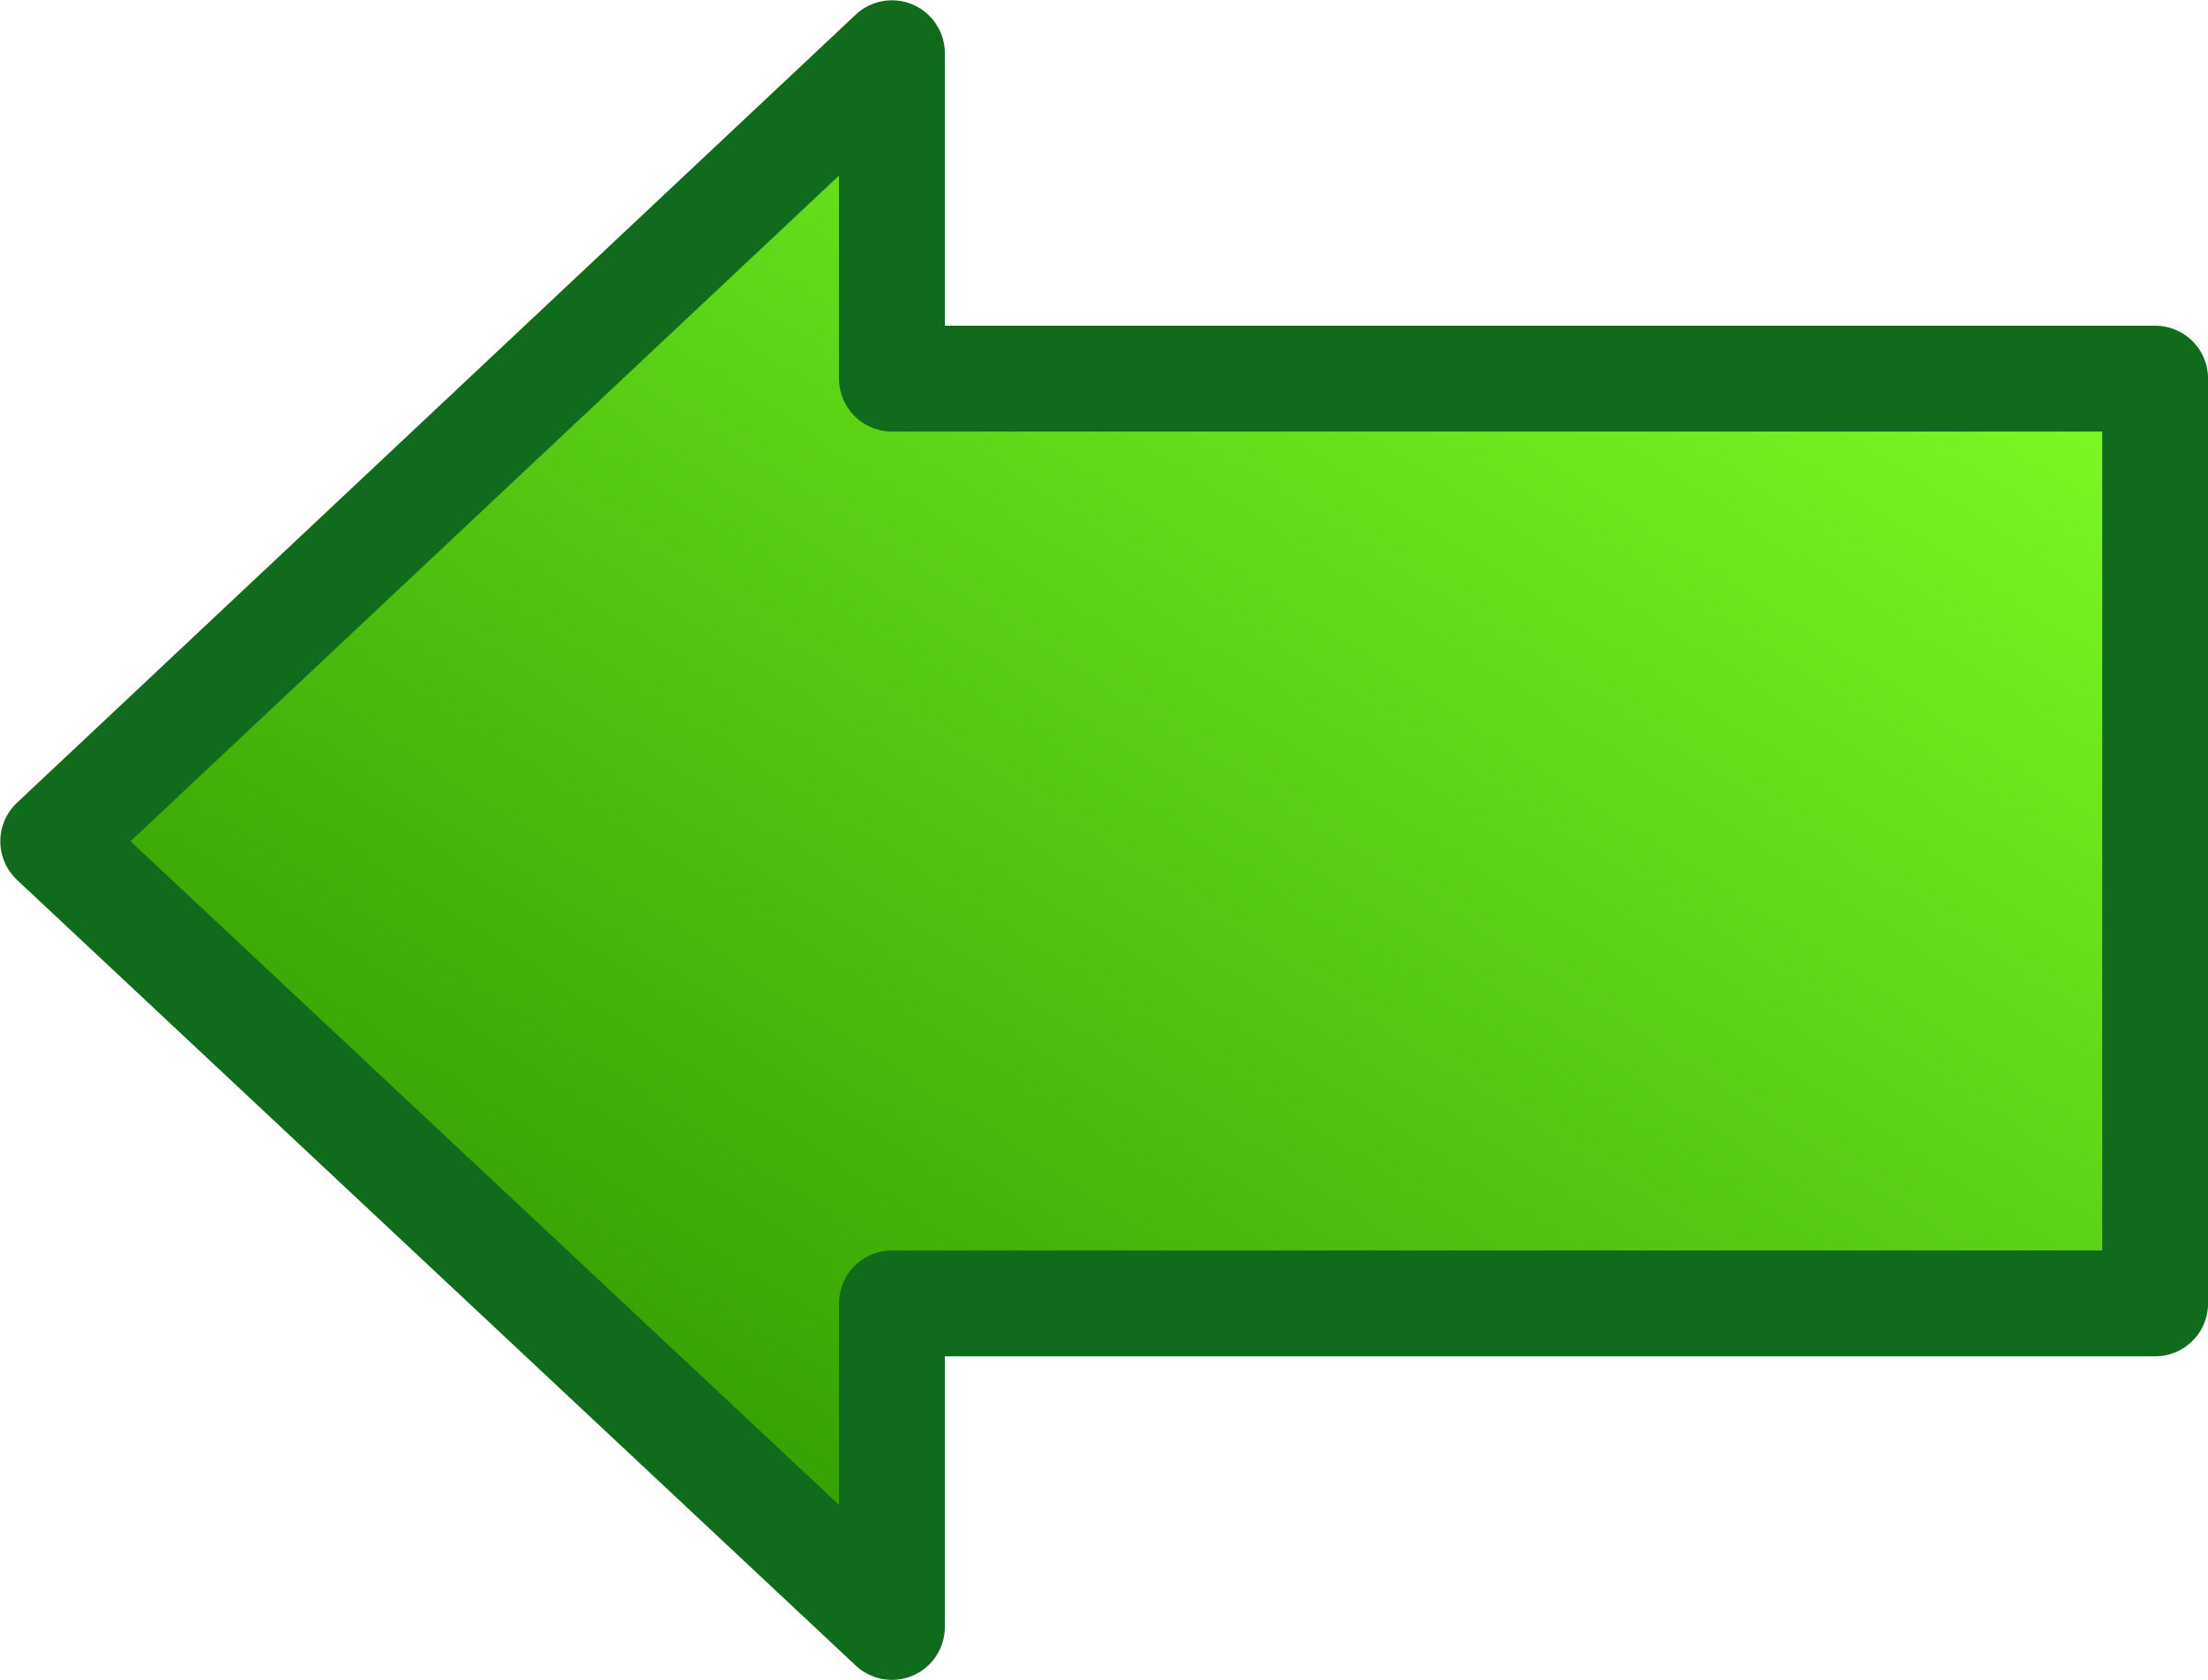 Green Bordered Arrow Png image #16664